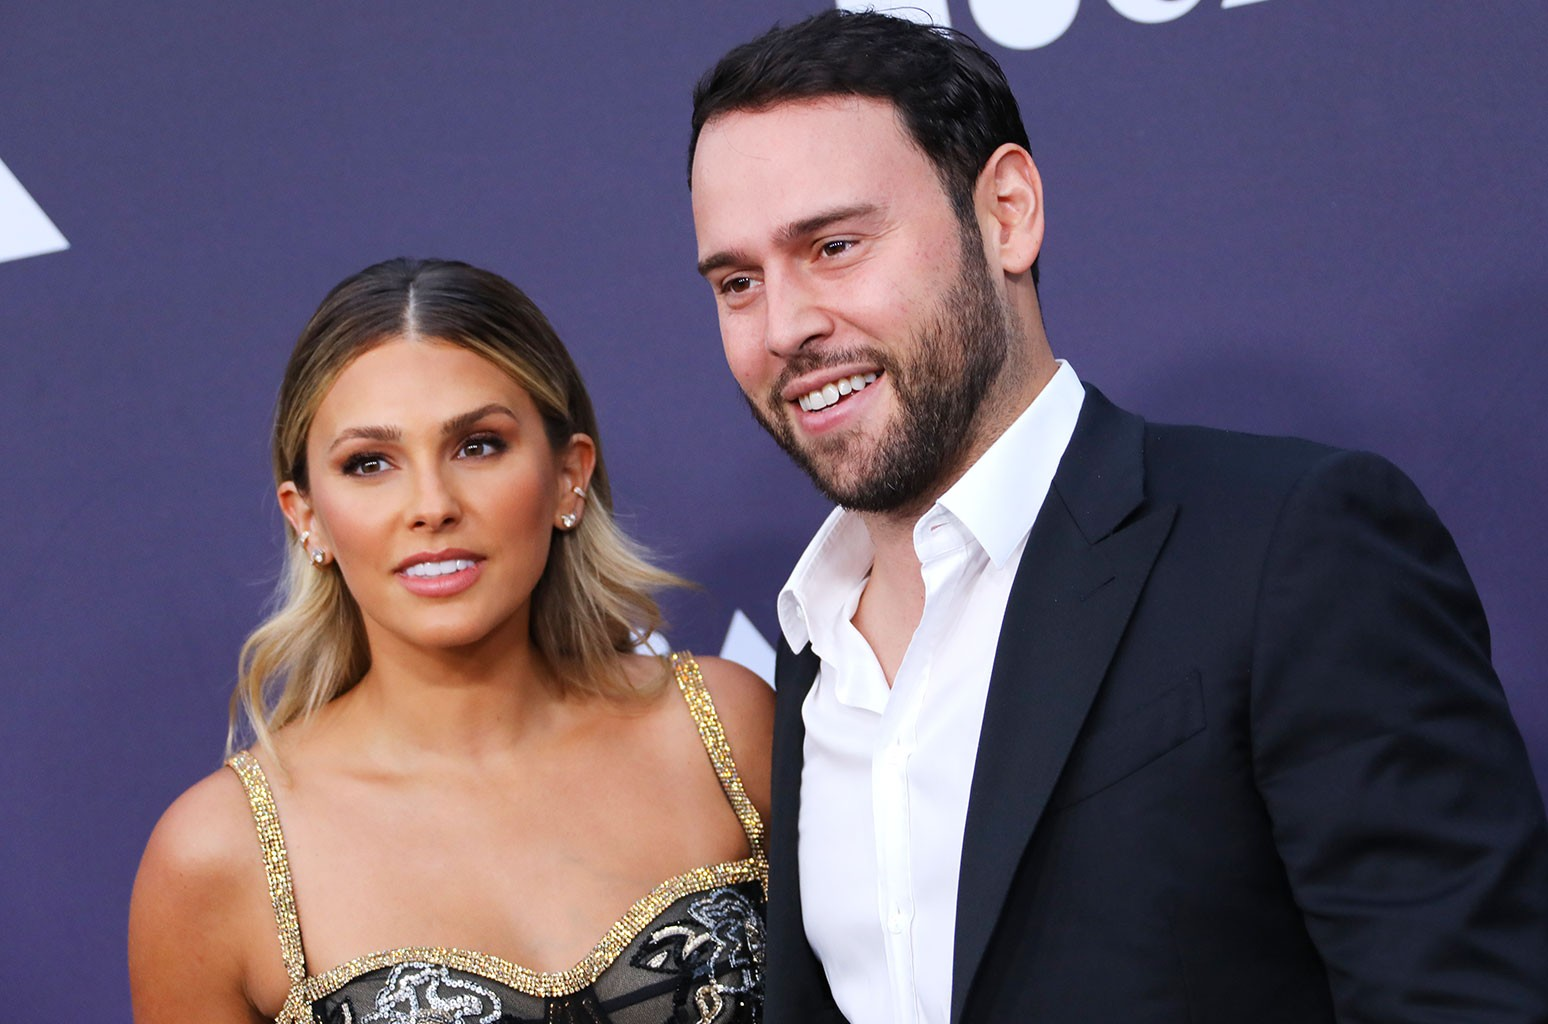 Yael Cohen Braun and Scooter Braun